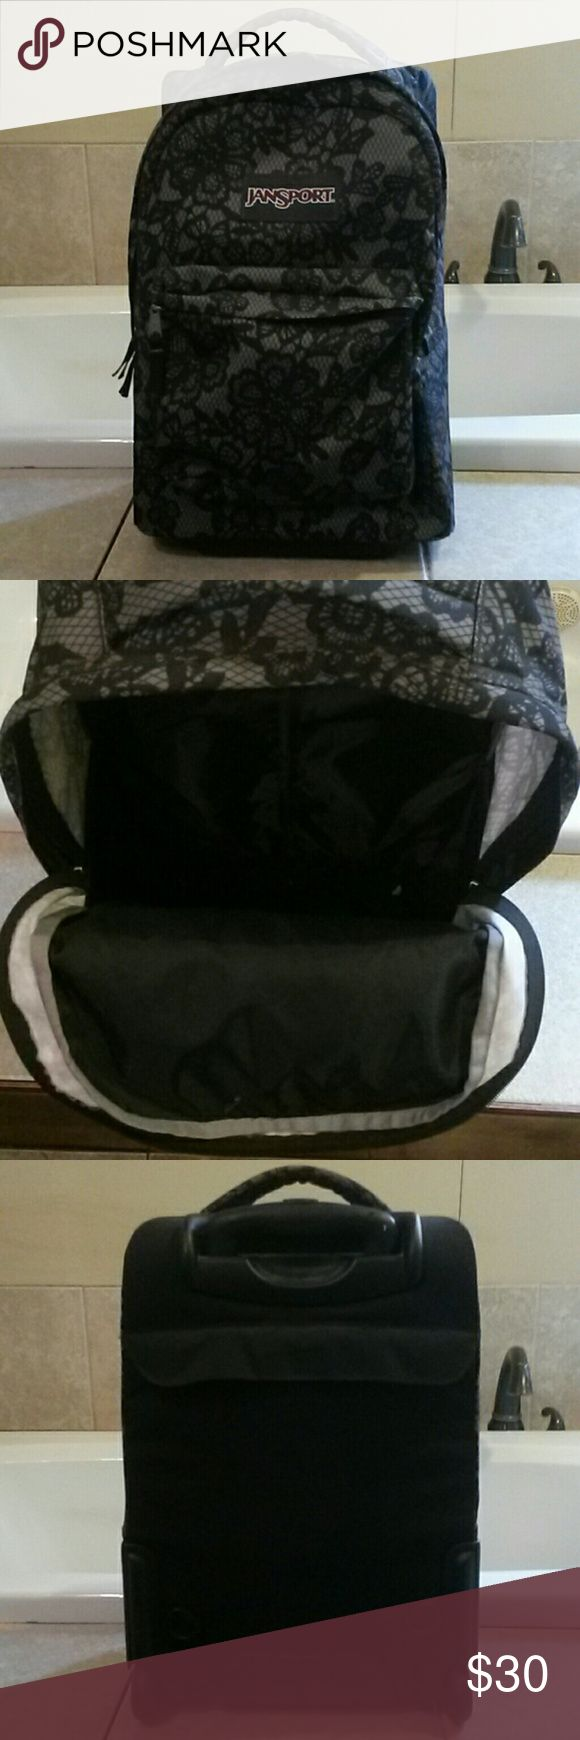 JanSport rolling bookbag tote Faux lace black and gray Jansport Bags Backpacks